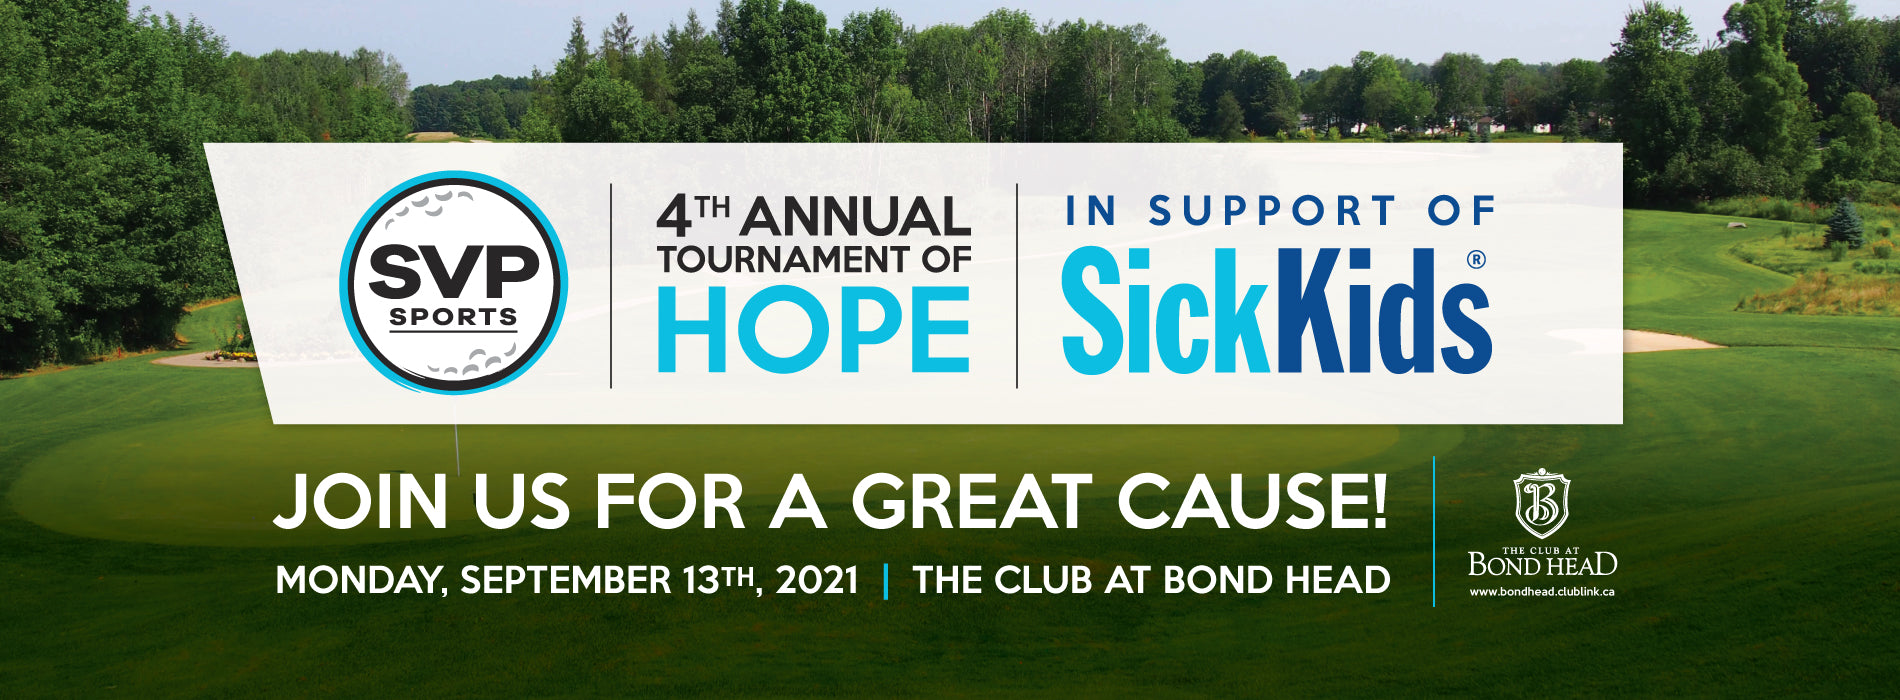 SVP Sports 4th Annual Tournament Of Hope